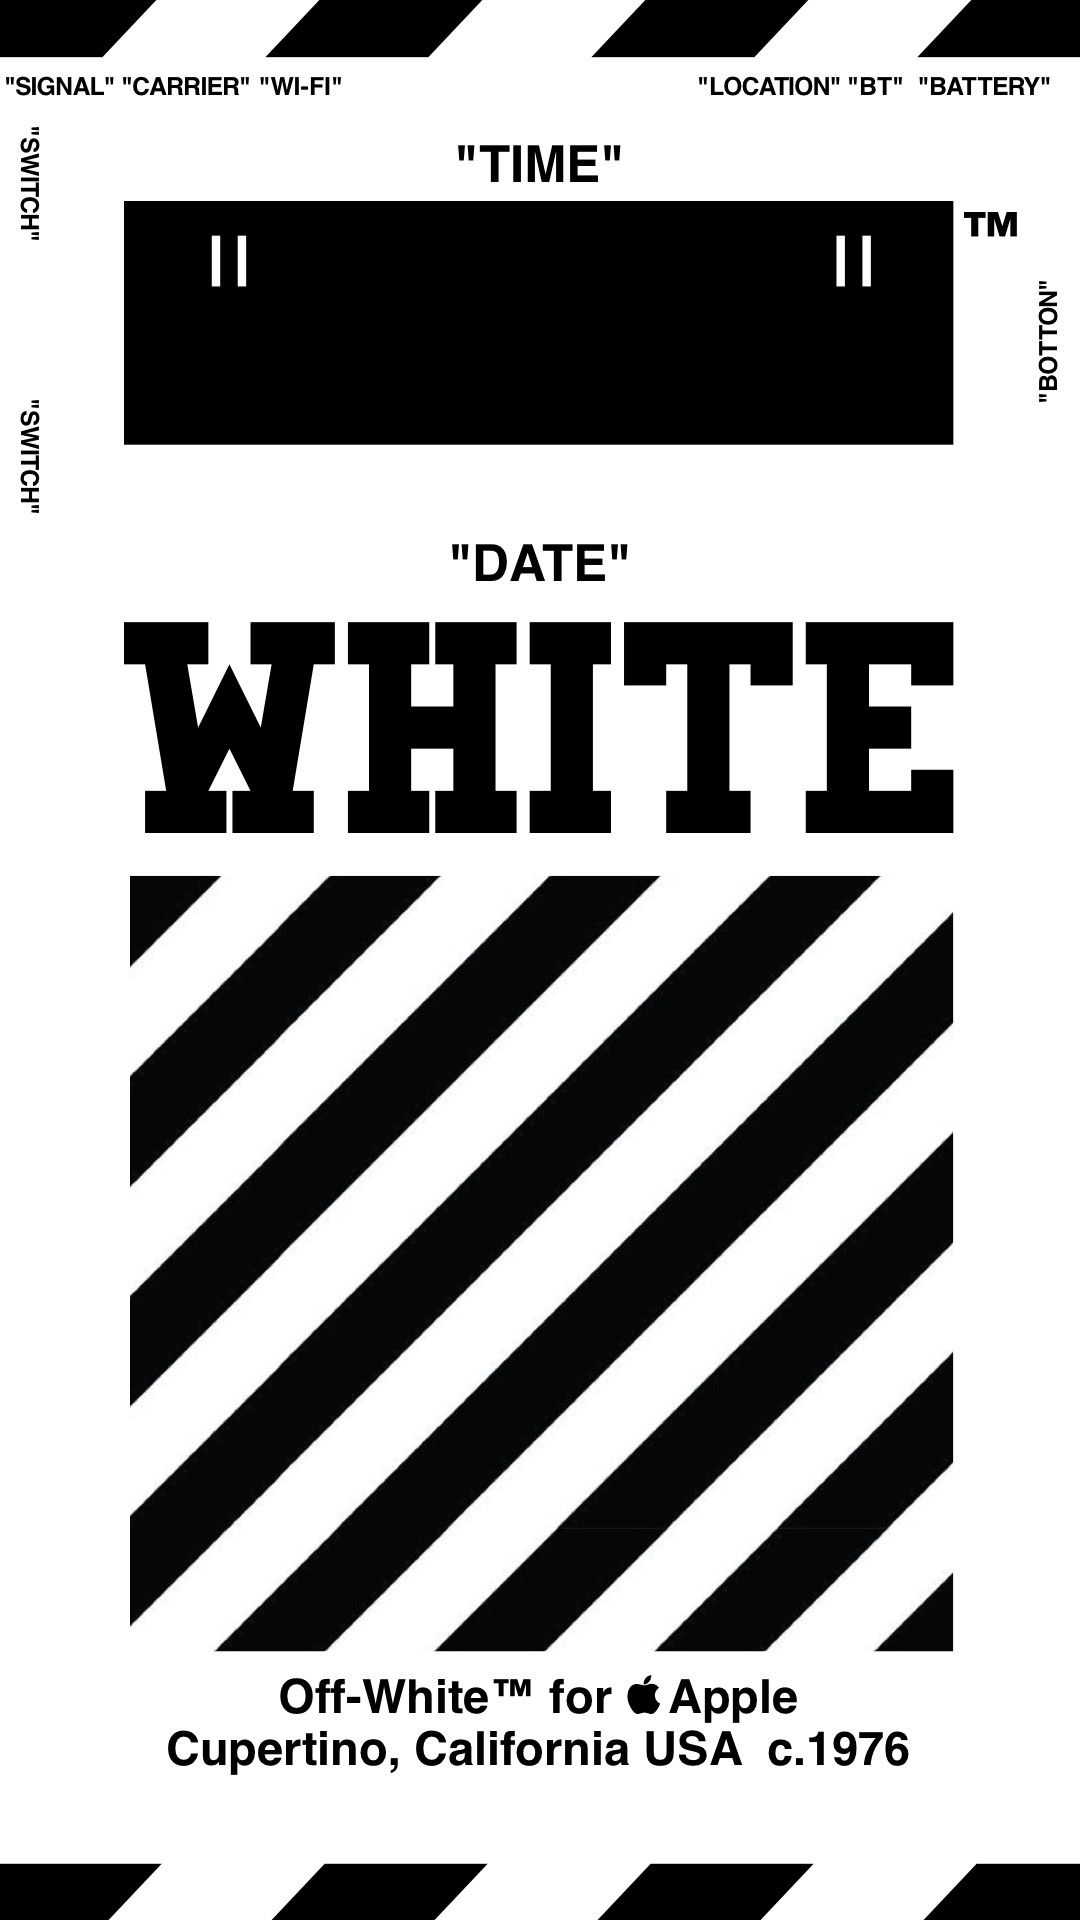 Off White 1 Iphone Wallpapers On Wallpaperdog